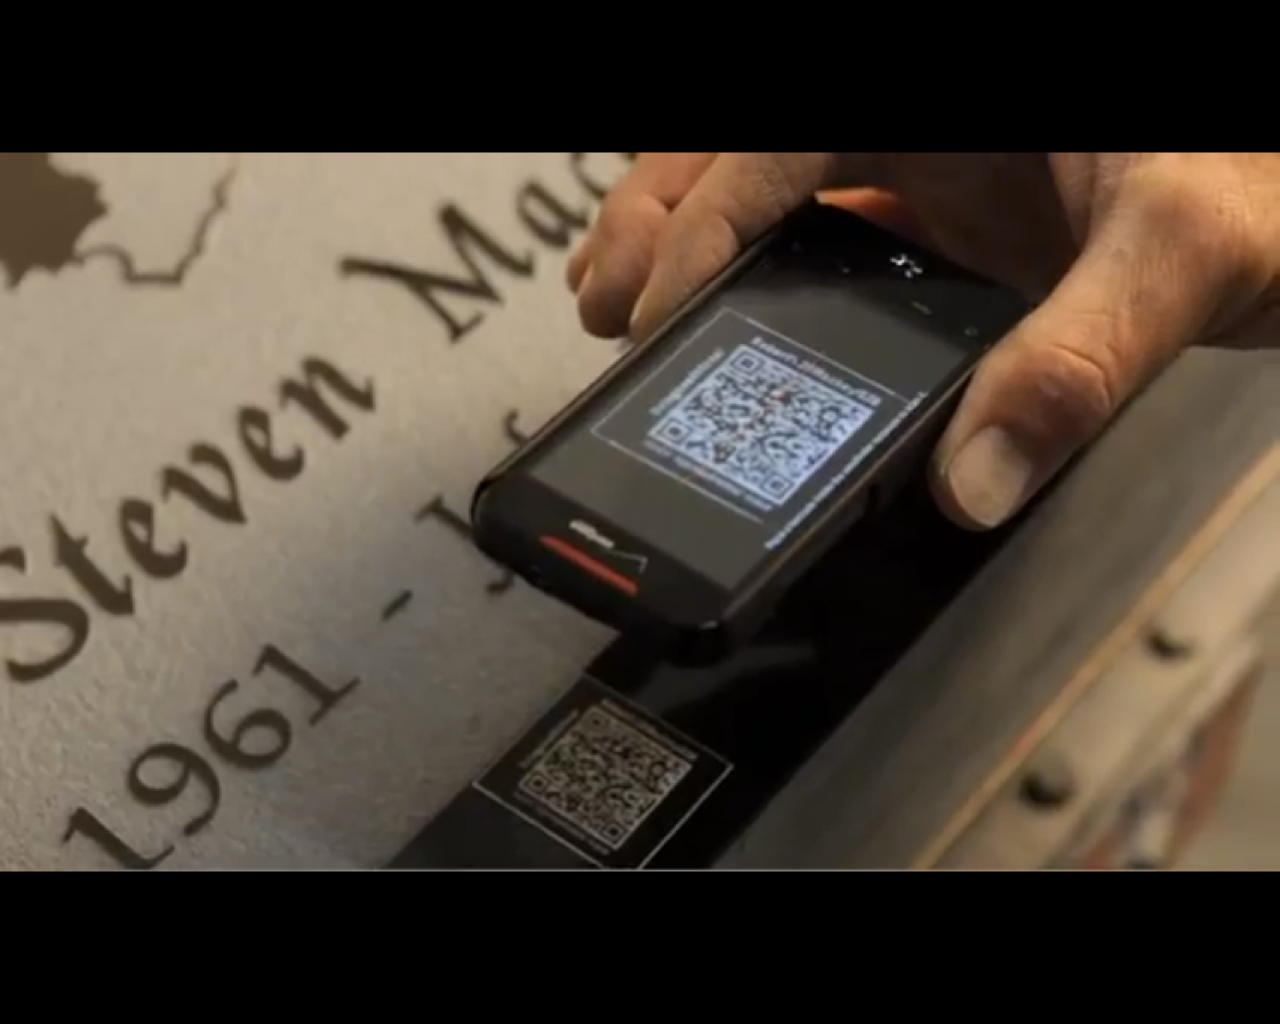 QR Codes, Microchips In Cemeteries